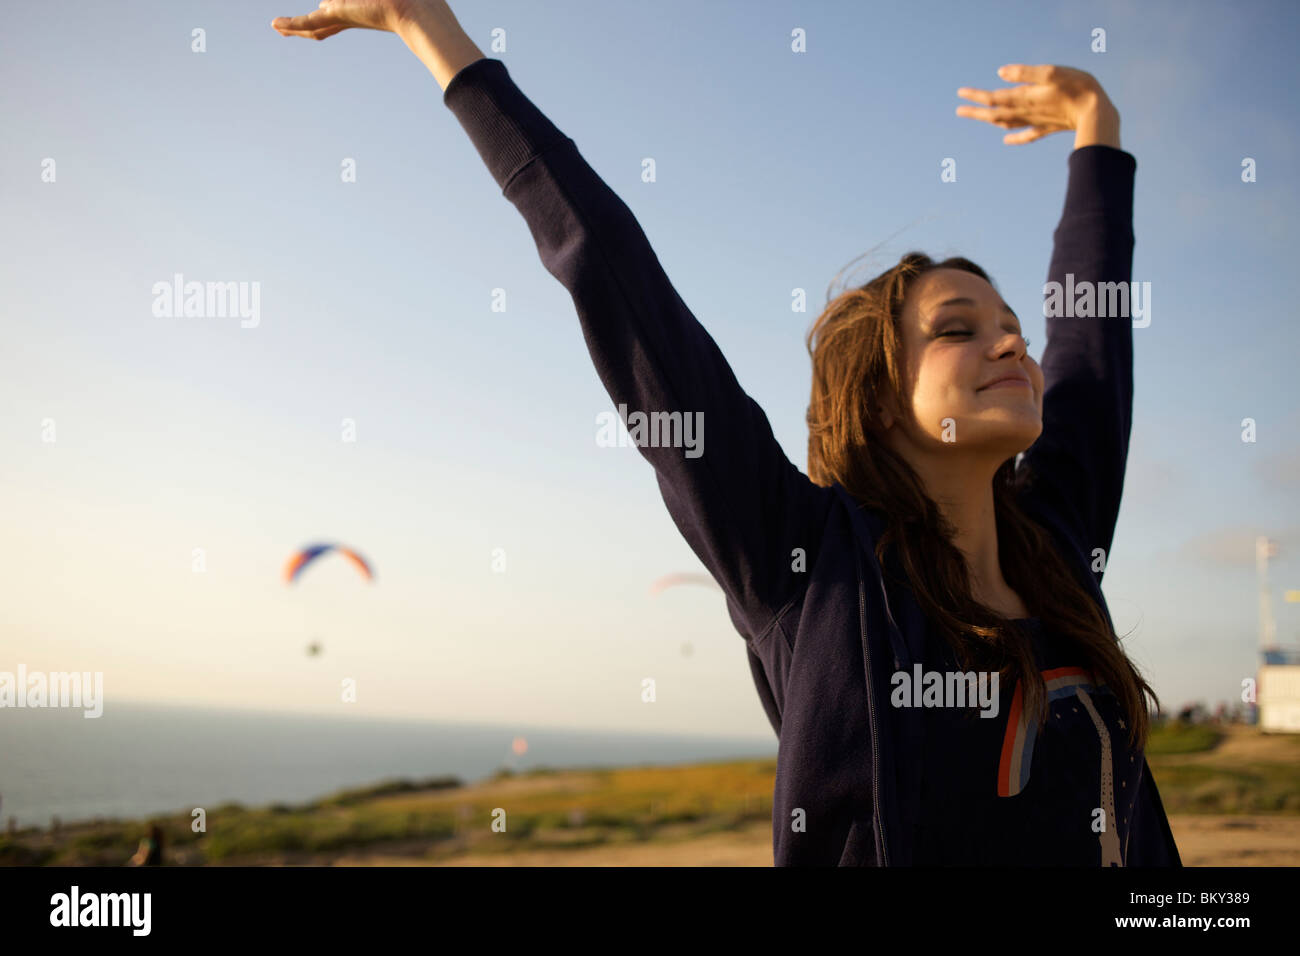 Female in her early 20's throws her arms up and closes her eyes to feel the wind at a paragliding port in California. - Stock Image